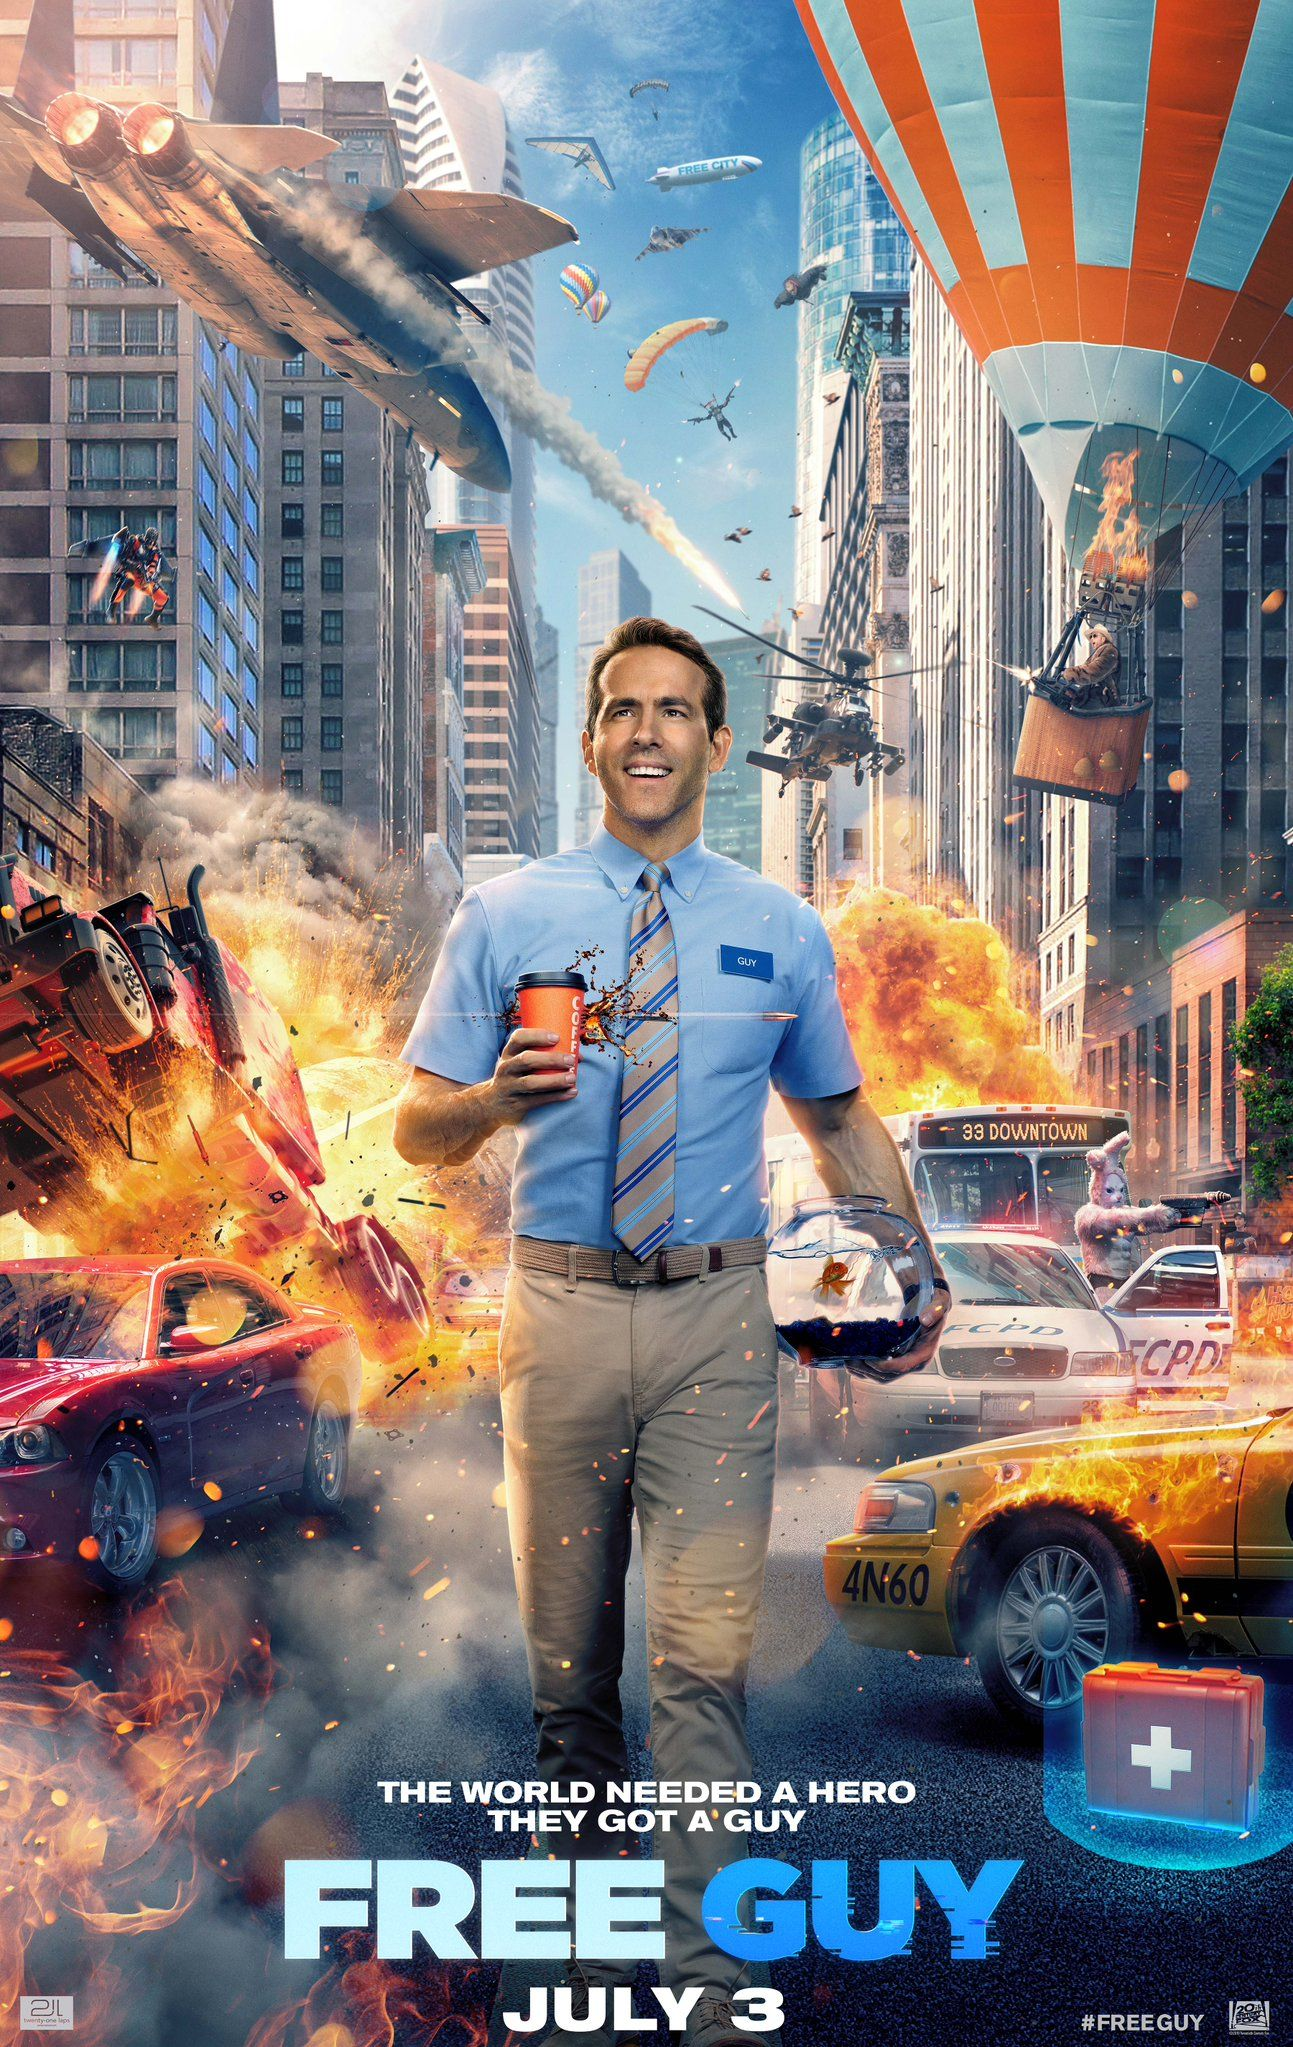 New Free Guy Poster Sees Ryan Reynolds Embrace Life in a